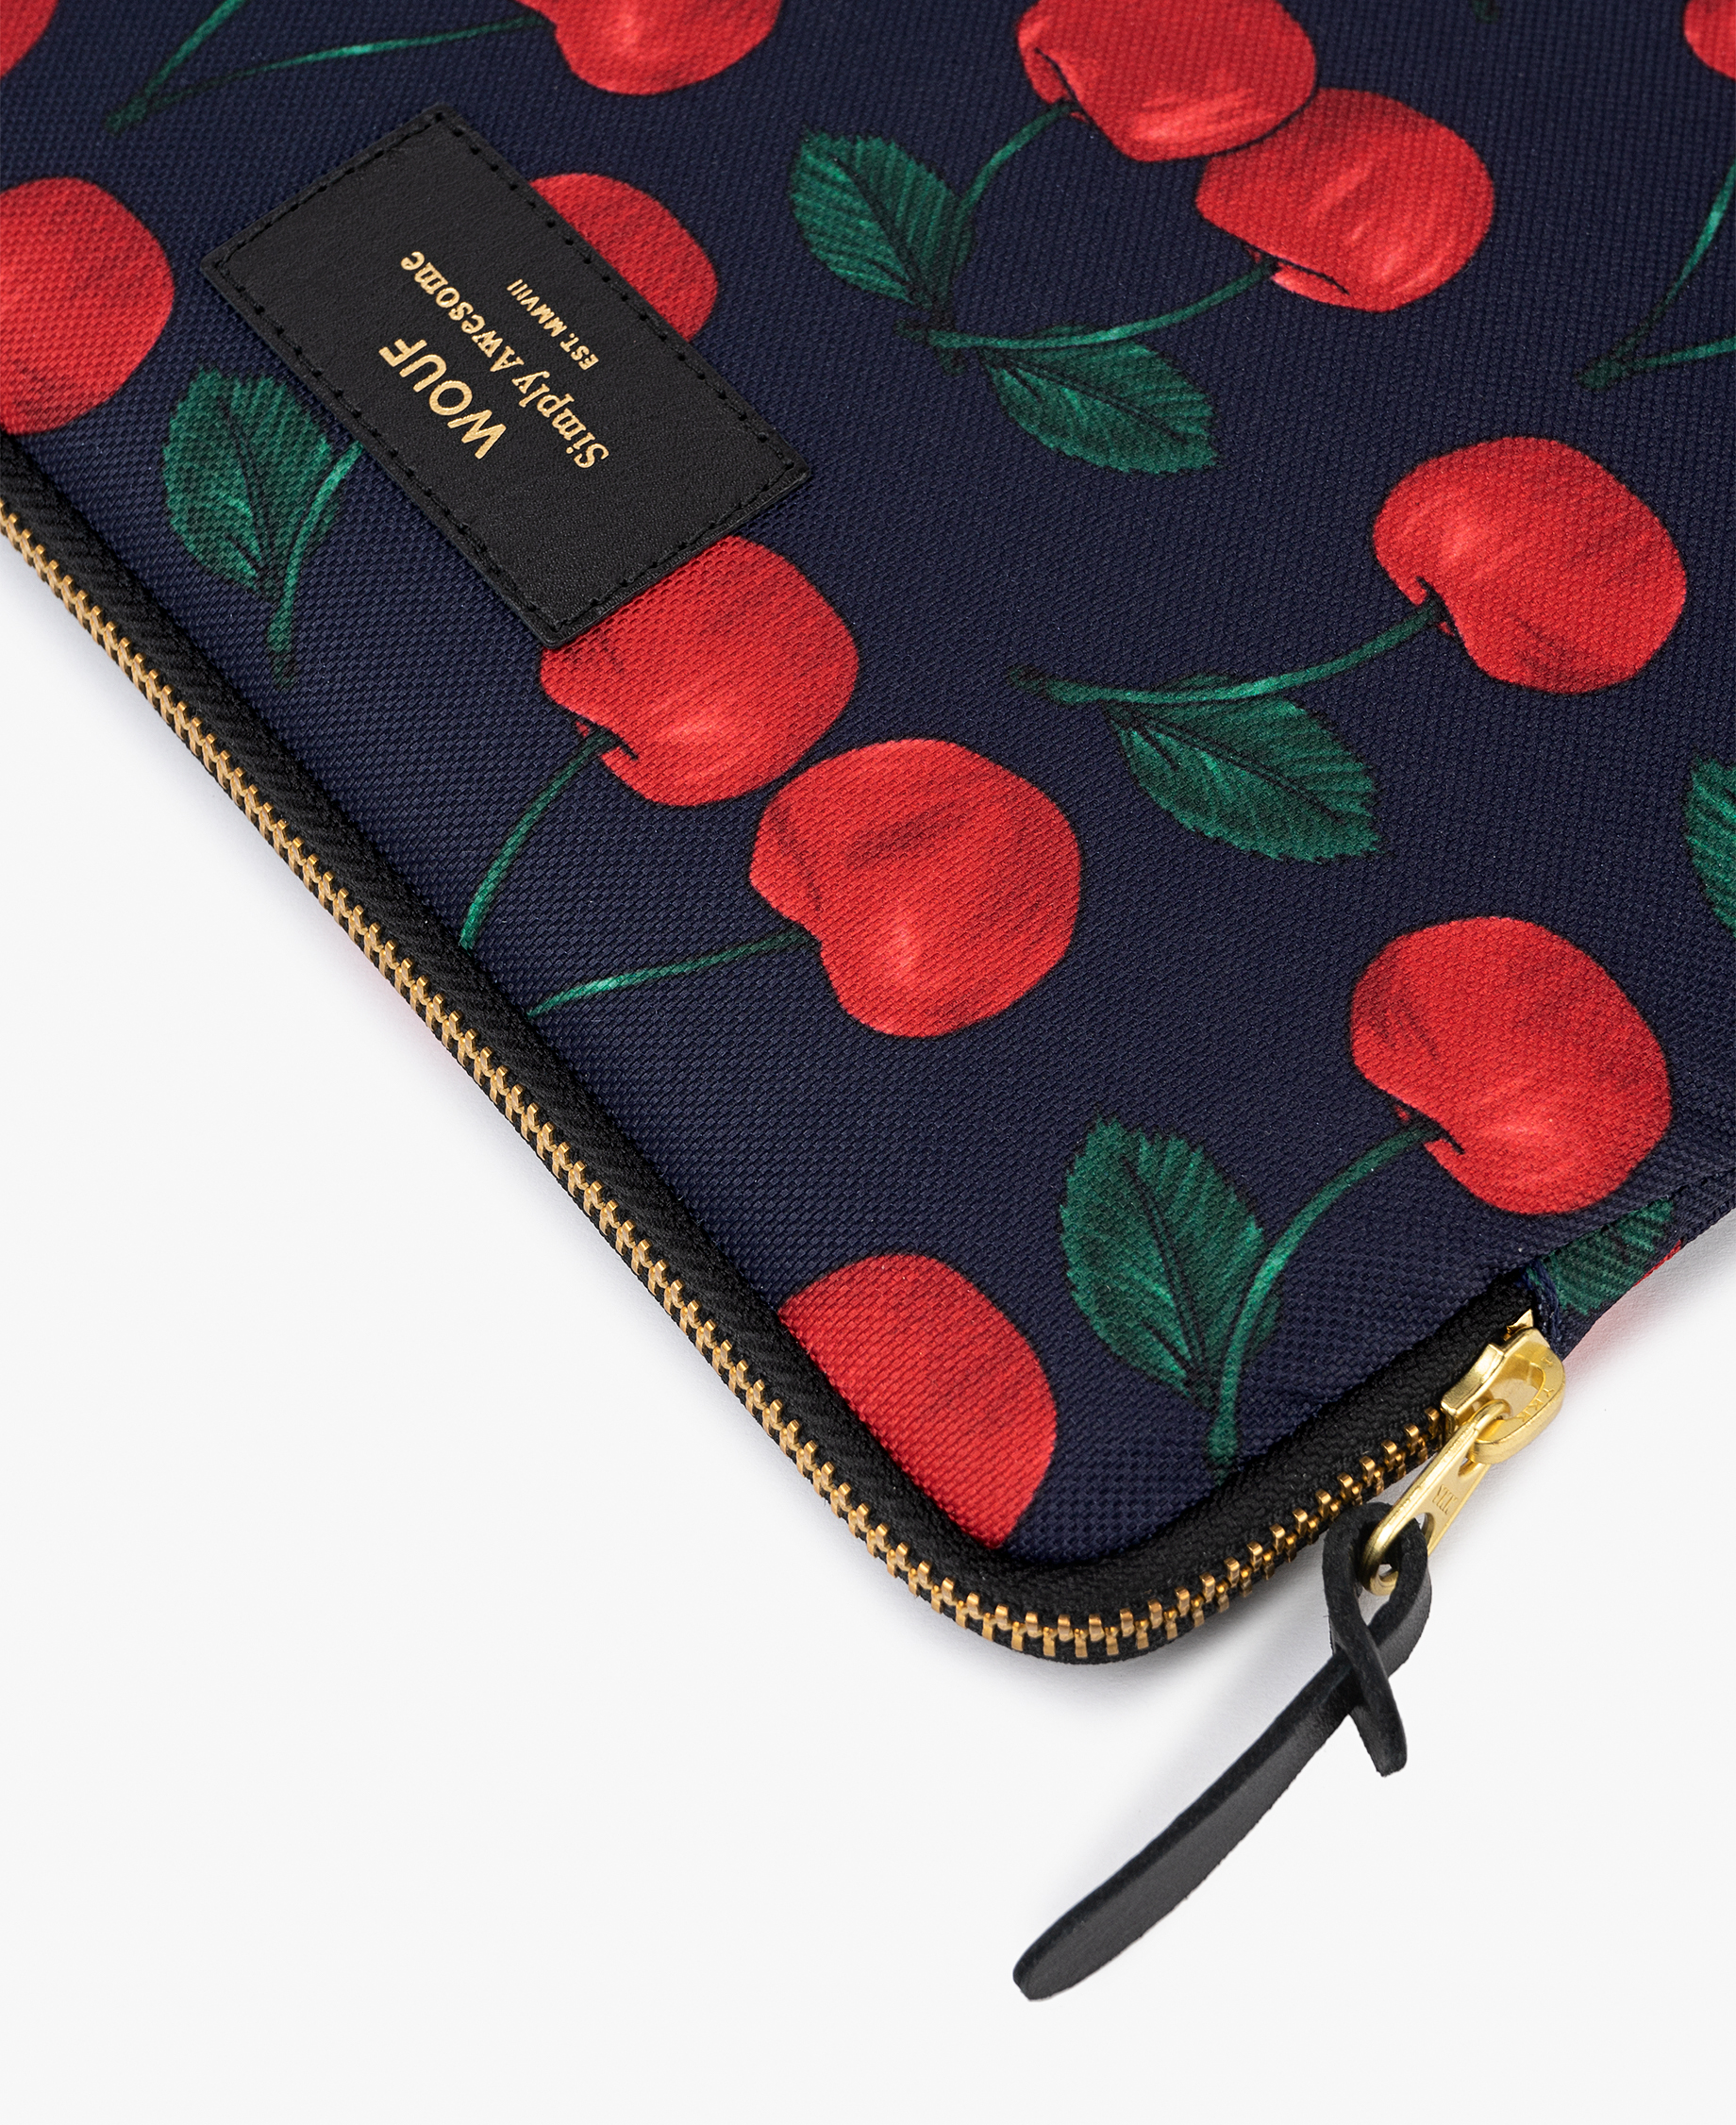 red cherries iPad cover